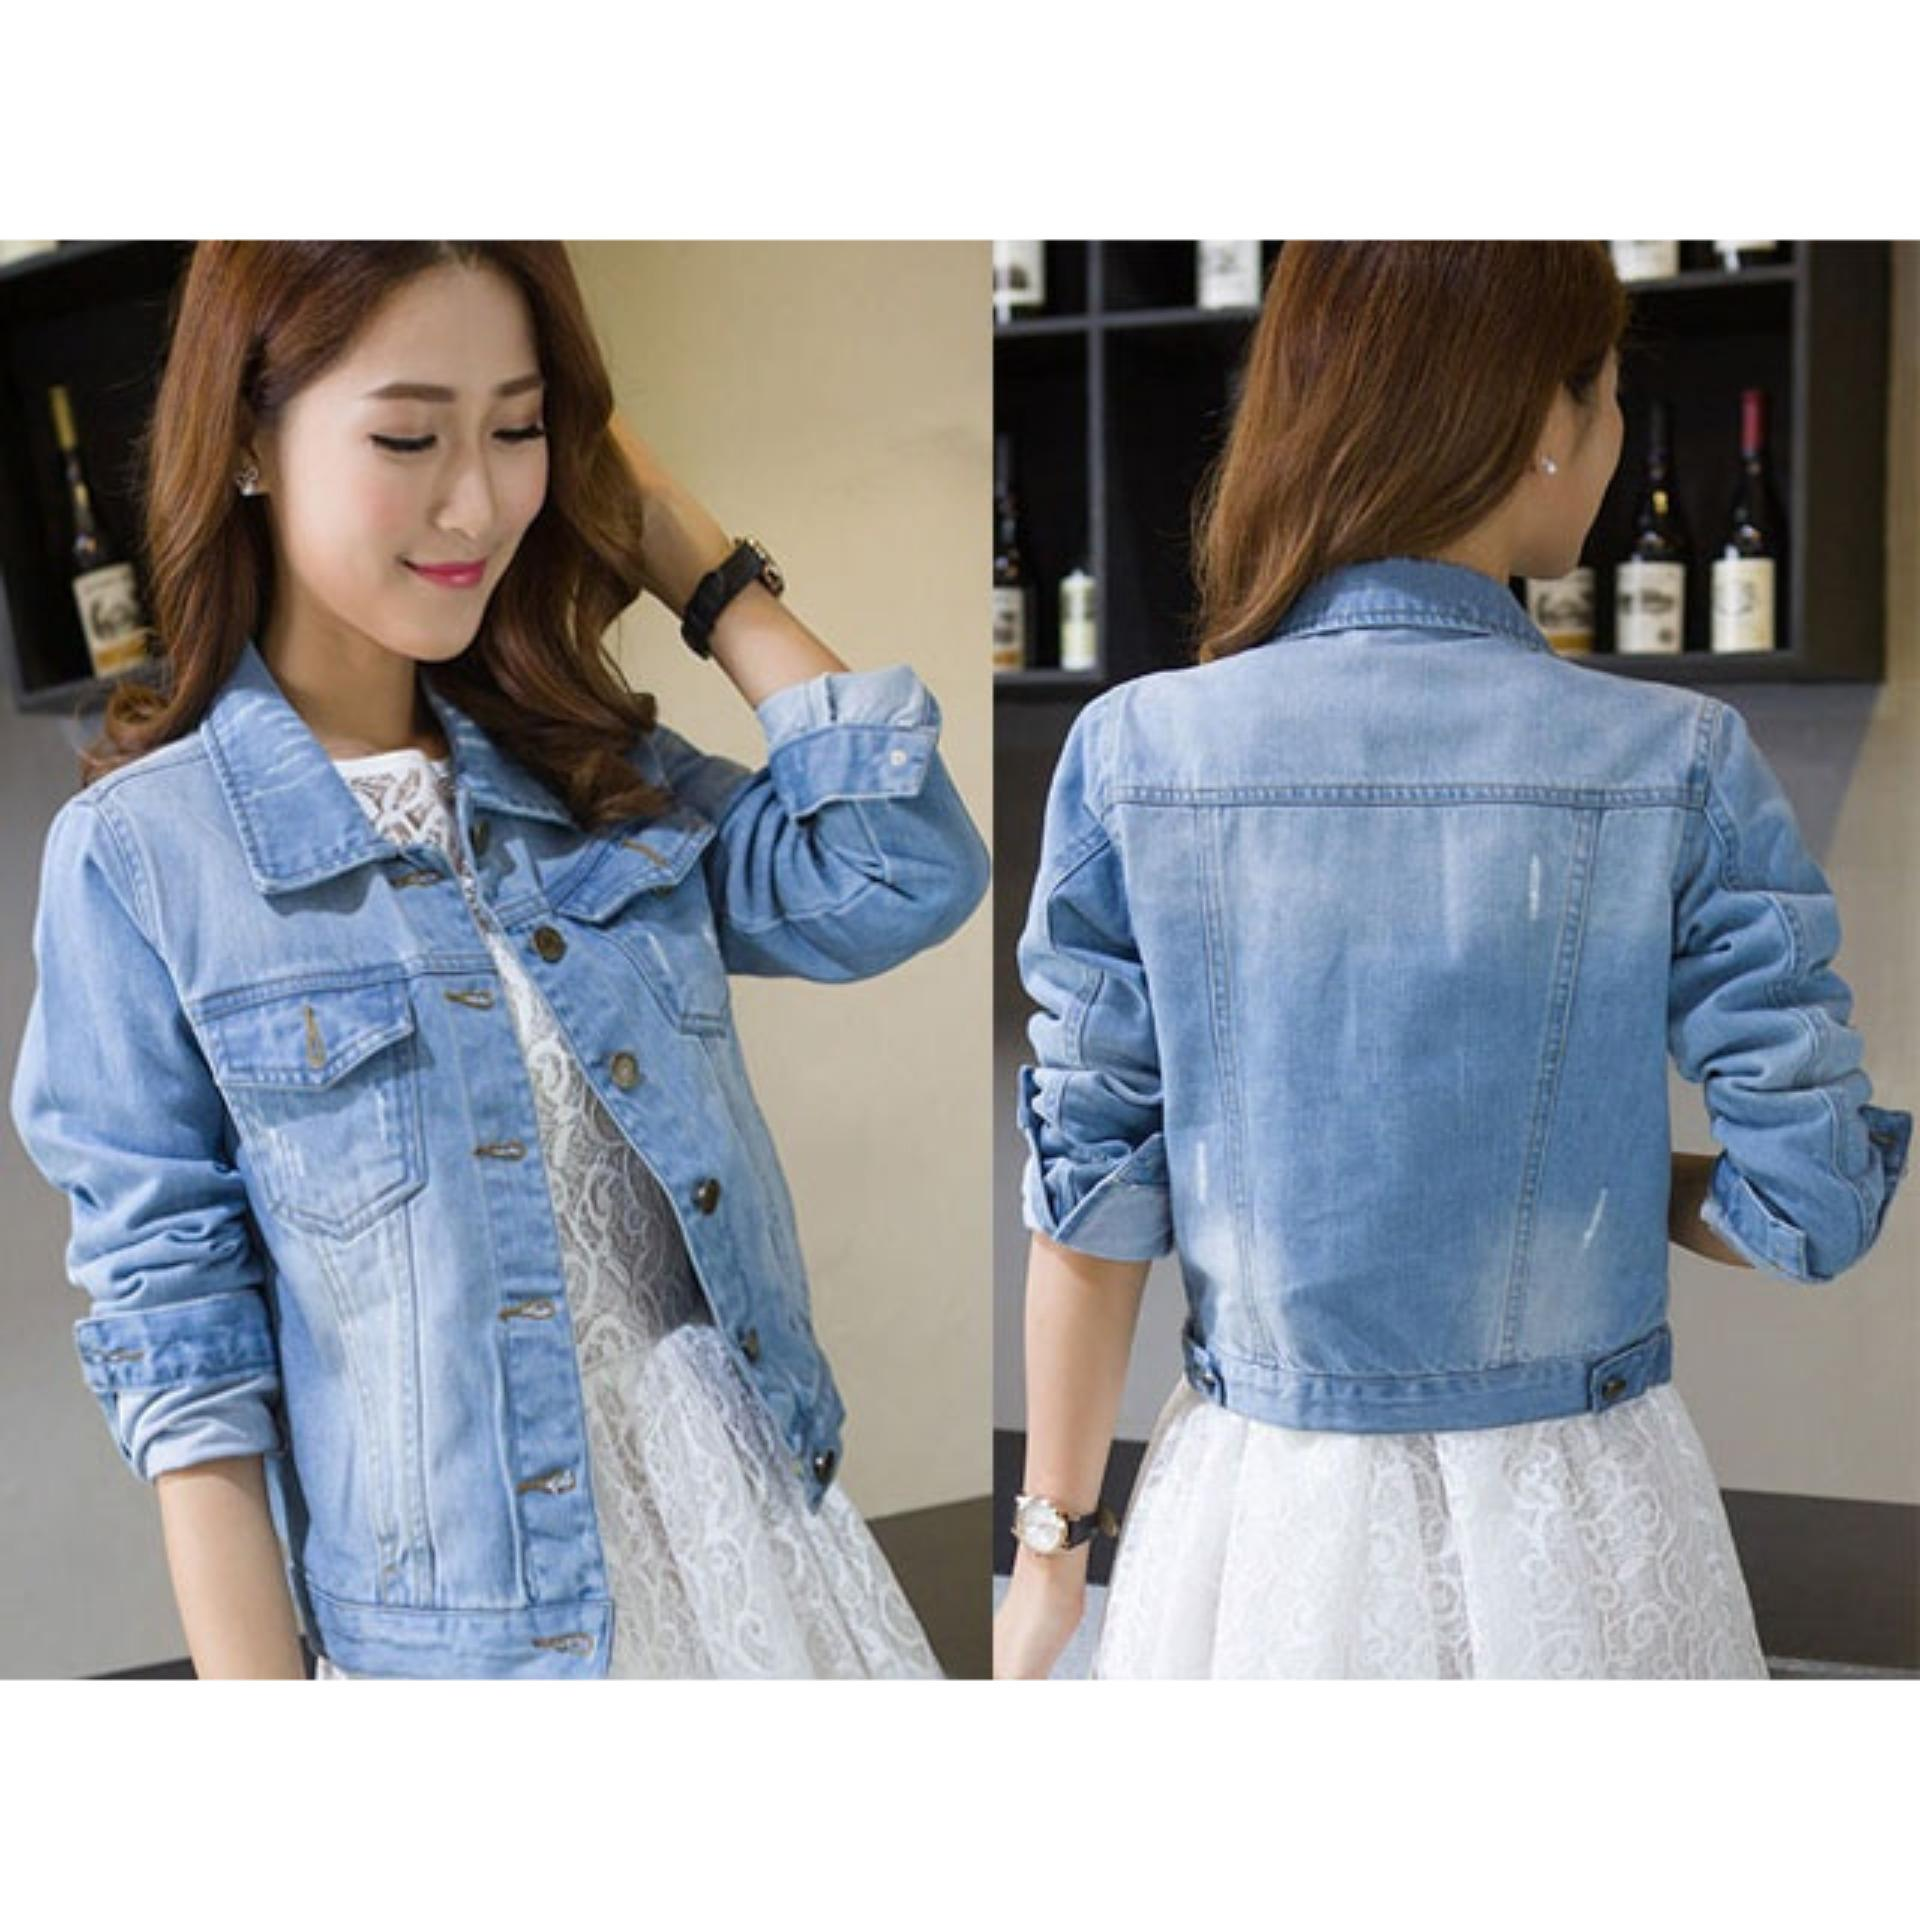 Flash Sale Jaket Jeans Wanita - Lady Jeans Jacket Biru Tua